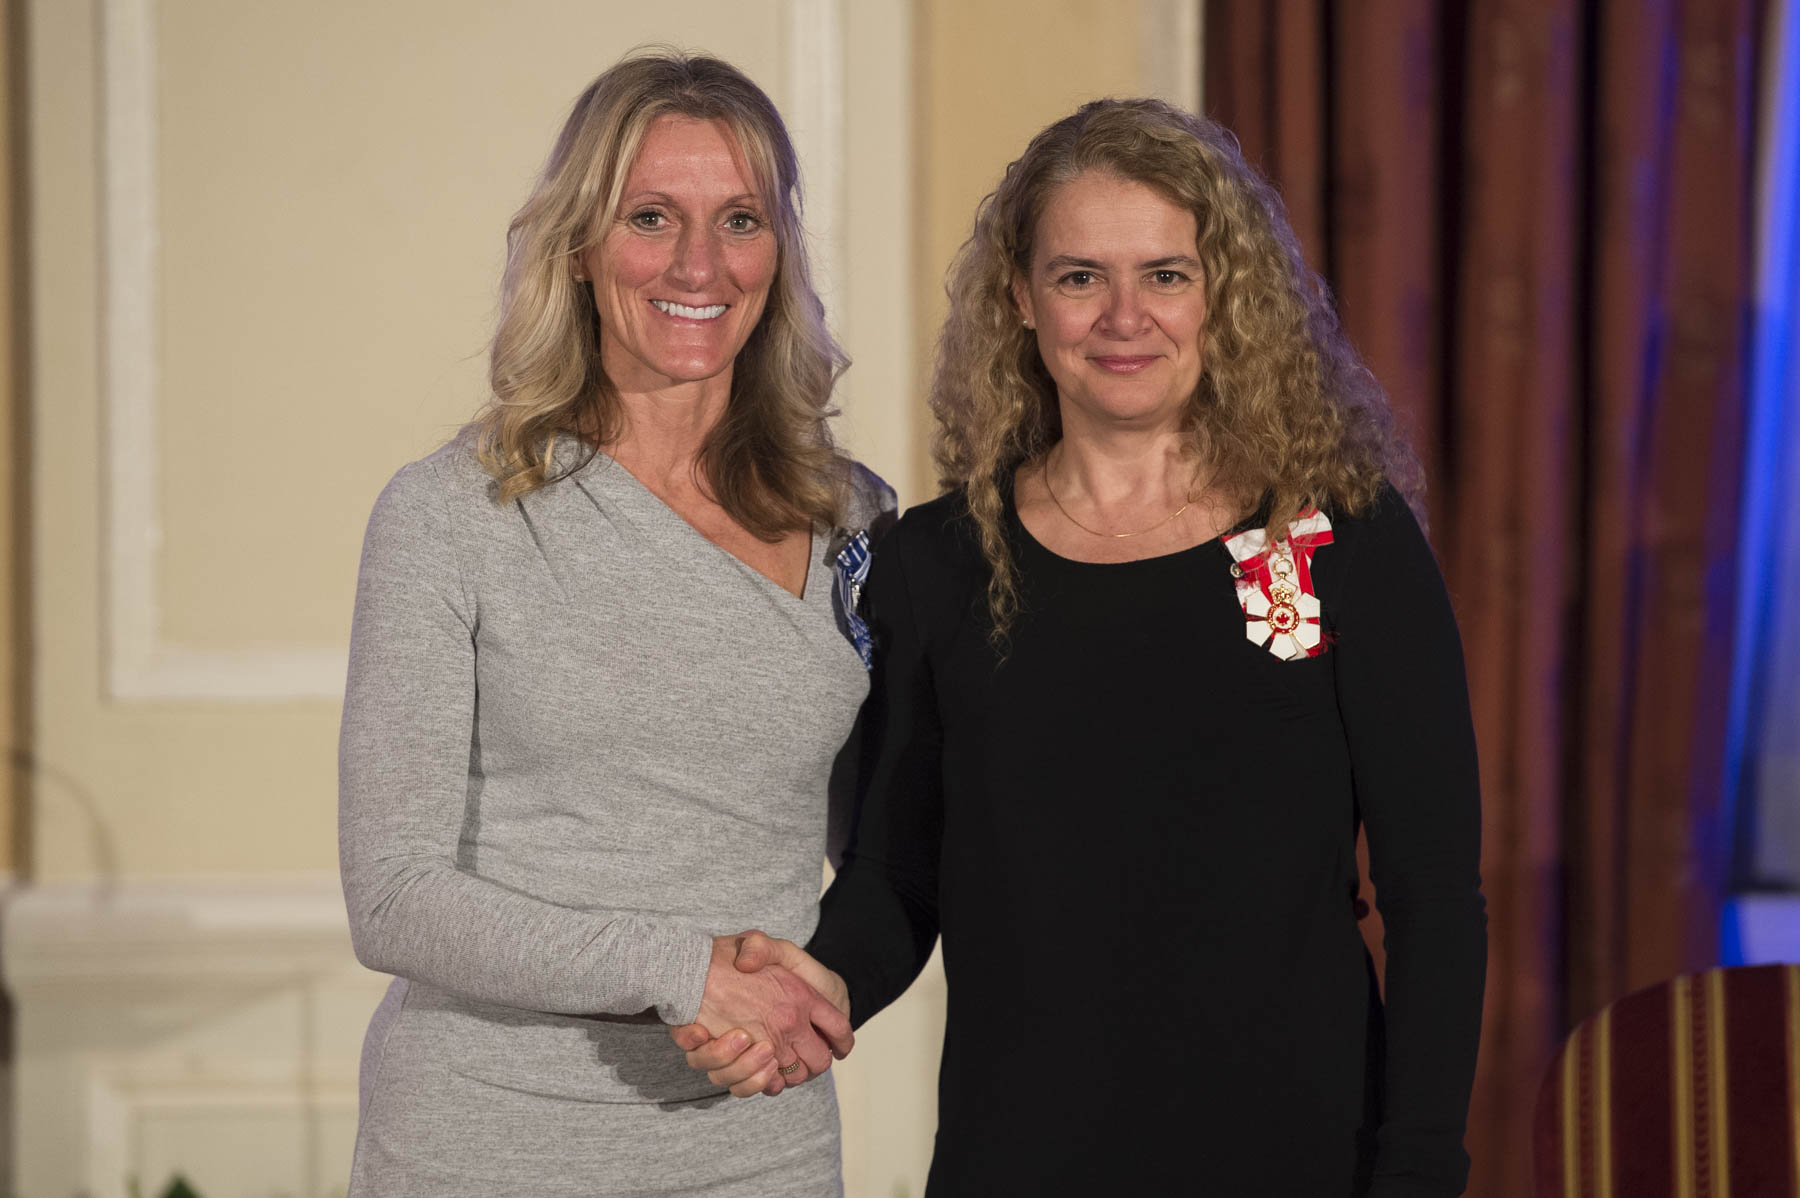 Theresa Carriere founded ONERUN in 2010 to give back to the community that supported her in her battle with breast cancer. Through the ONERUN marathons, she has covered more than 500 kilometres, while the initiative has raised over $900,000 for cancer research and patient support networks. She now travels to schools across the province to inspire youth and promote active lifestyles.